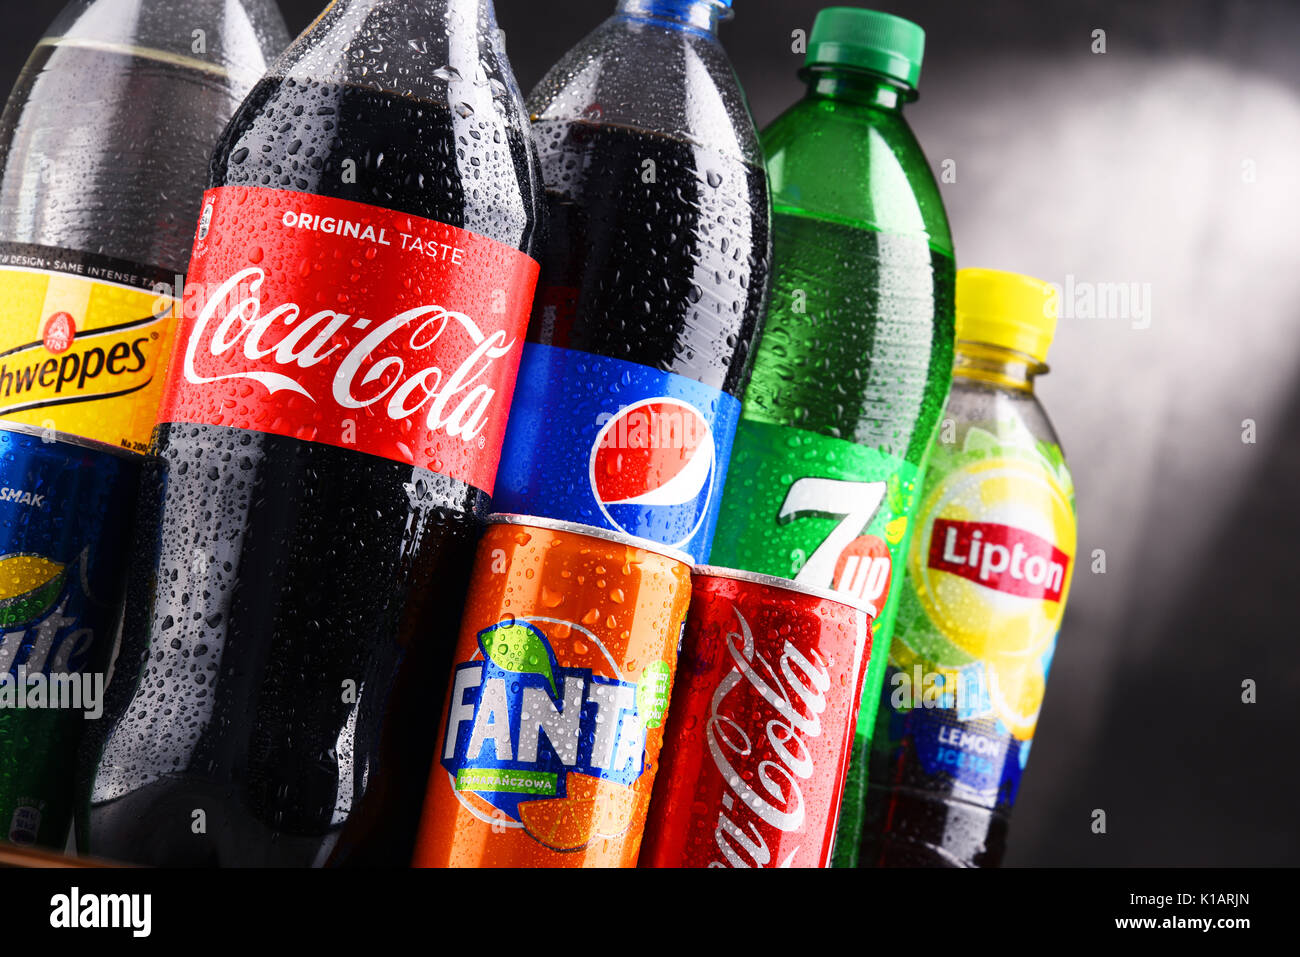 soft drink market in poland Soft drinks market in poland – water is getting more popular than cola - economic news - poland's soft drinks market declined in 2013 by 11% to pln 1176 bln - data from research firm.